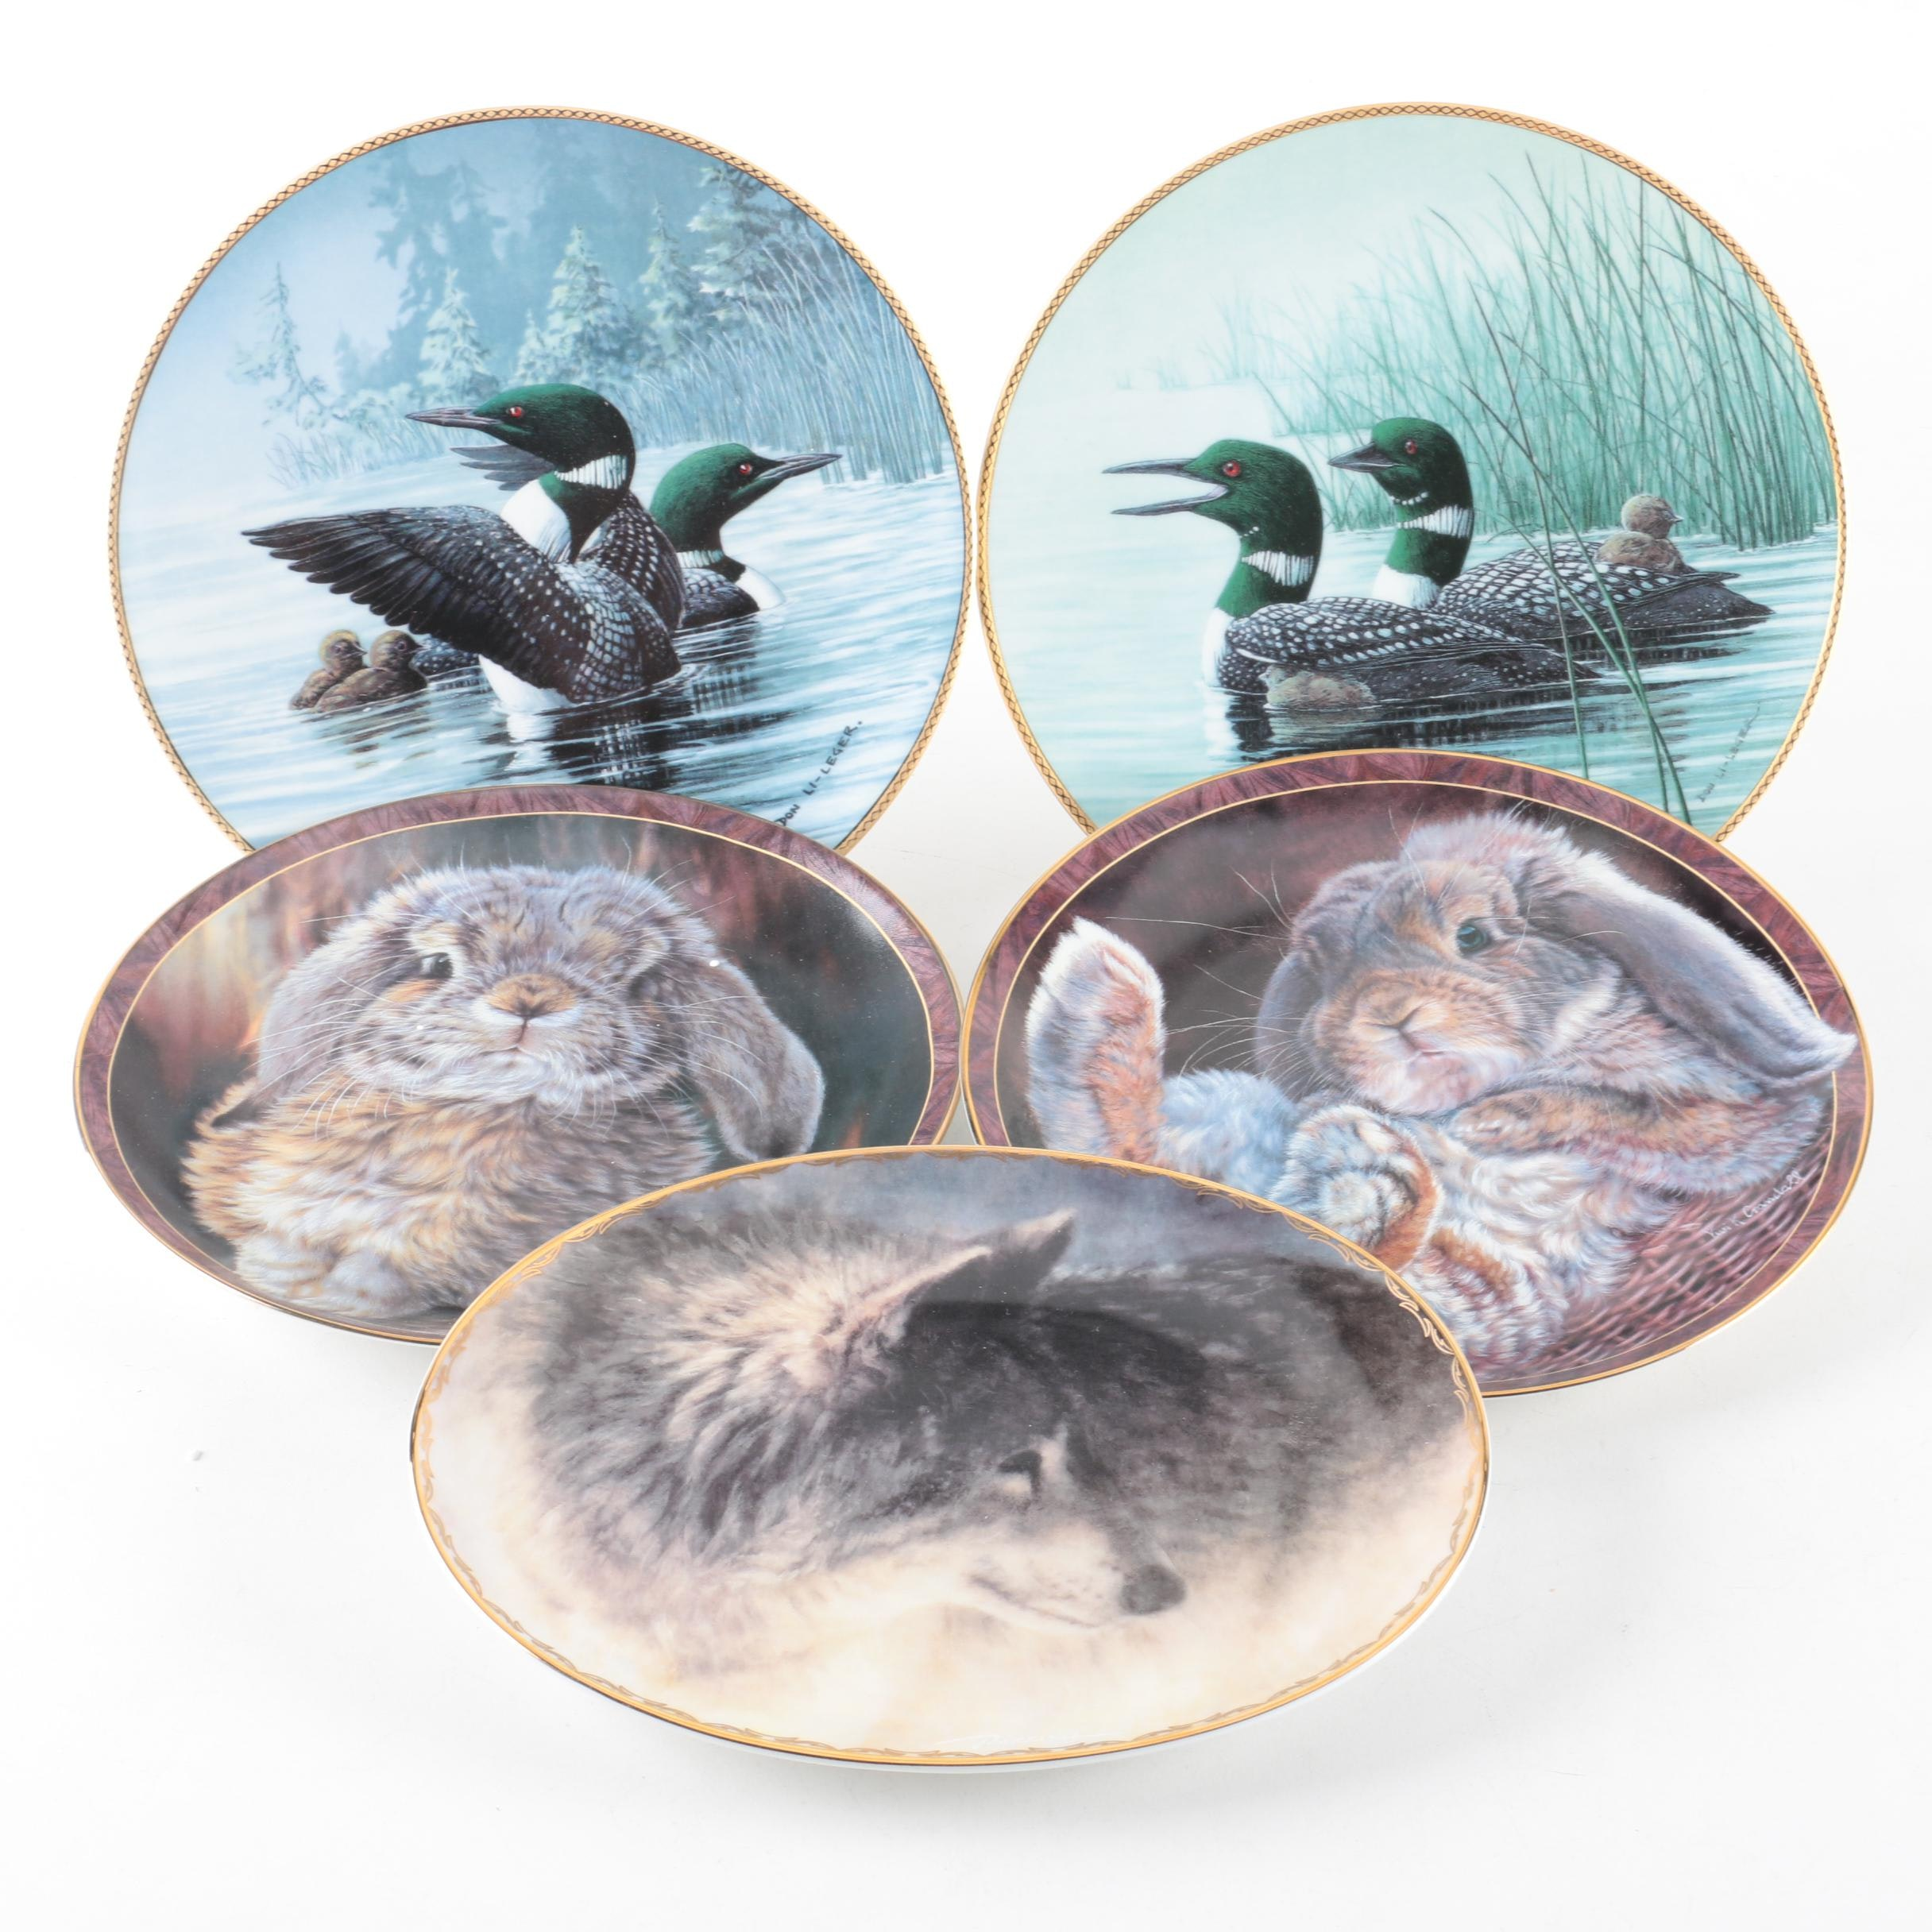 Bradford Exchange Limited Edition Decorative Porcelain Plates